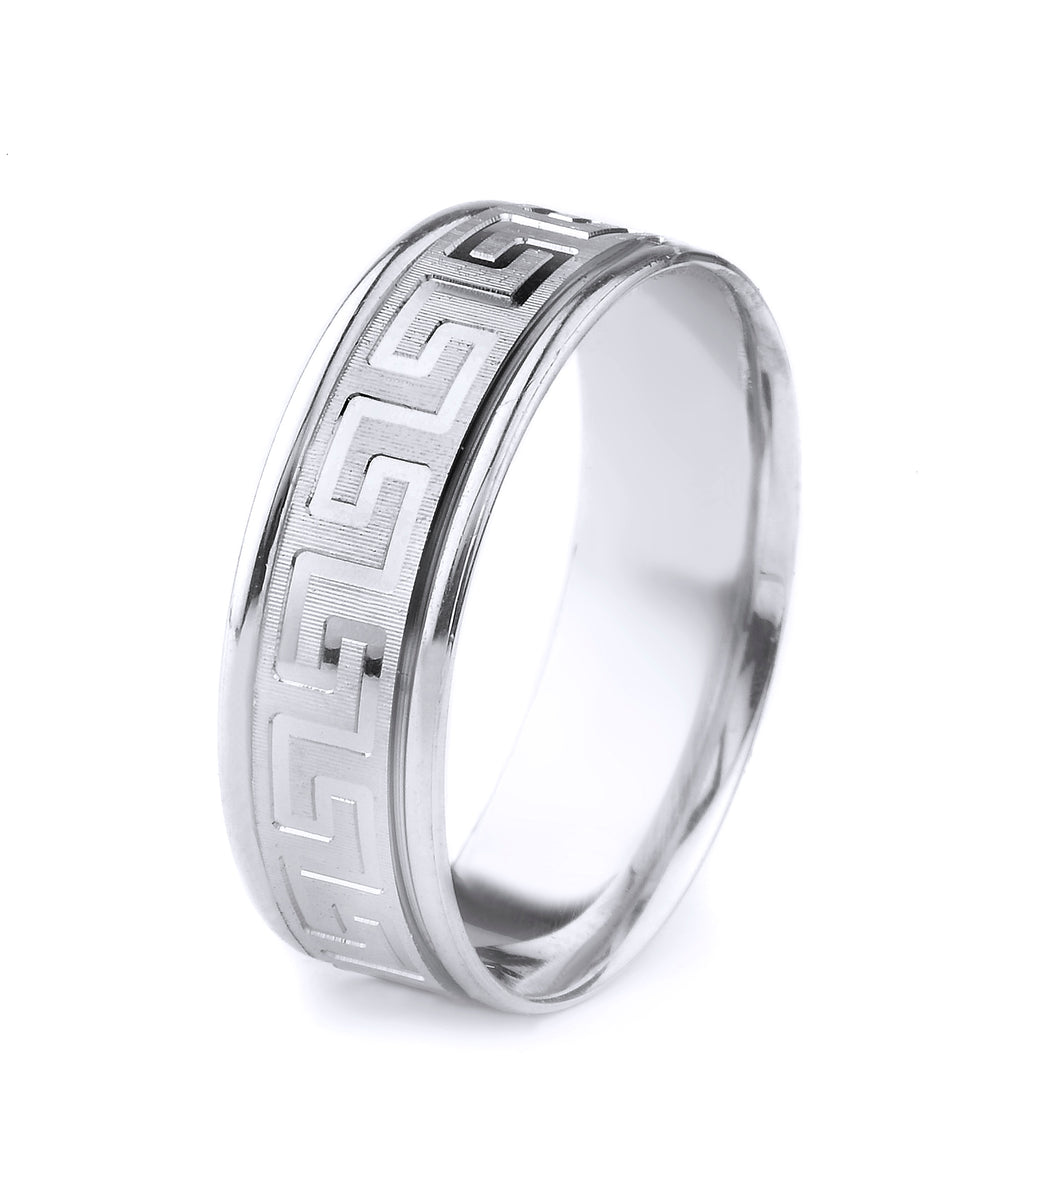 18K GOLD MEN'S WEDDING BAND WITH GREEK KEY DESIGN WITH WORN COIN EDGE FINISH AND POLISHED EDGES